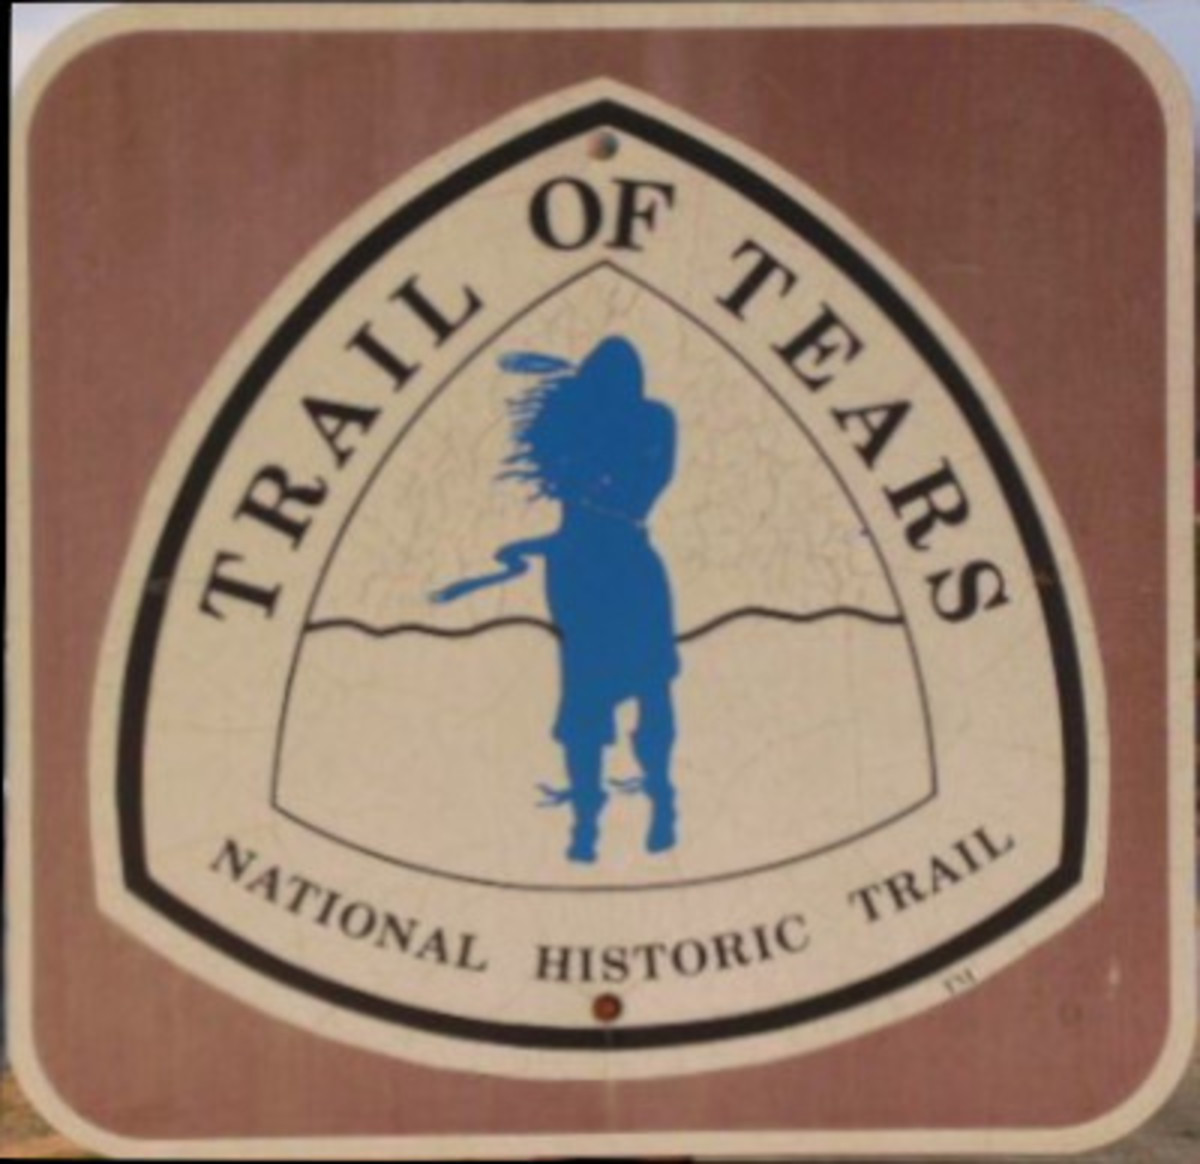 Trail Marker -- Trail of Tears National Historic Trail